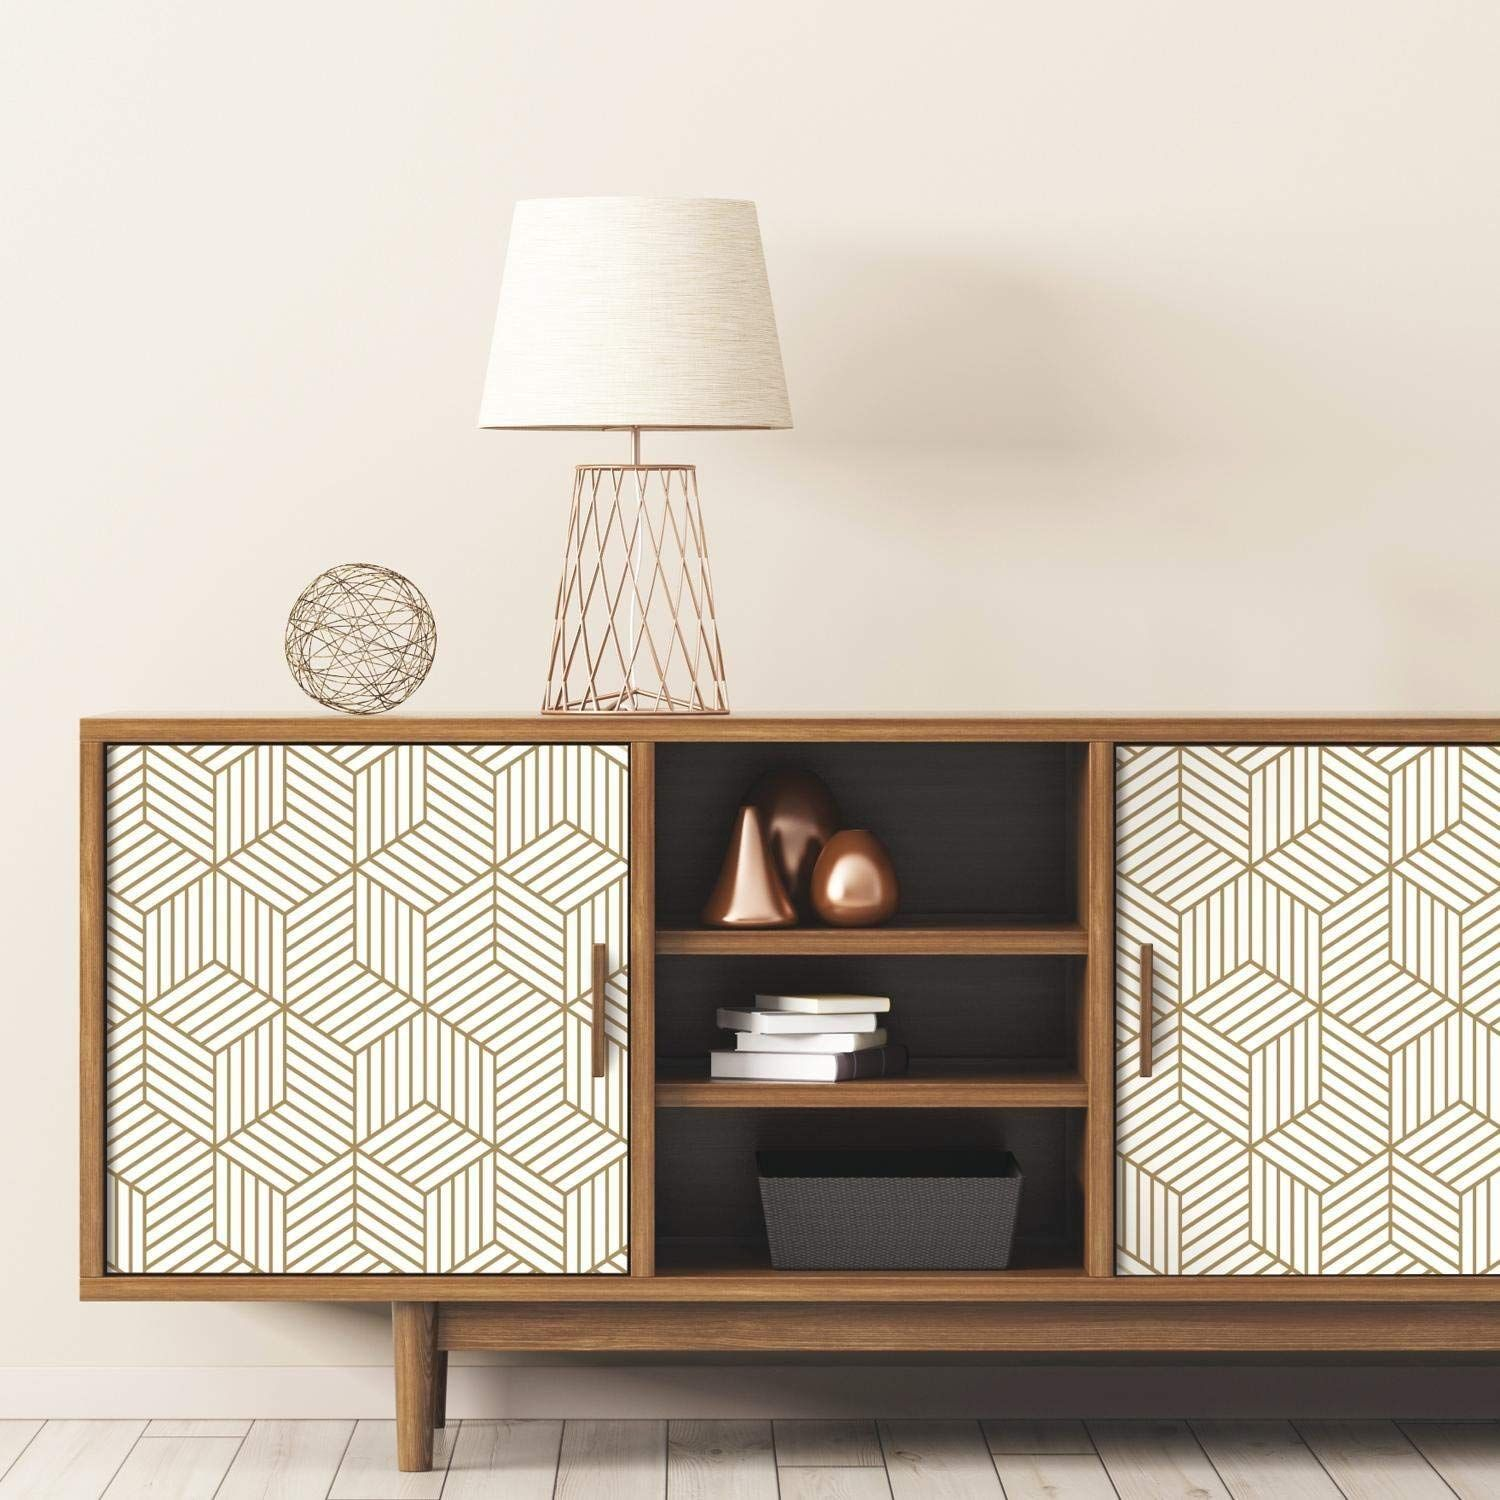 Roommates Gold And White Stripped Hexagon Peel And Stick Wallpaper Amazon Com Peel And Stick Wallpaper Mid Century Modern Wallpaper Roommate Decor